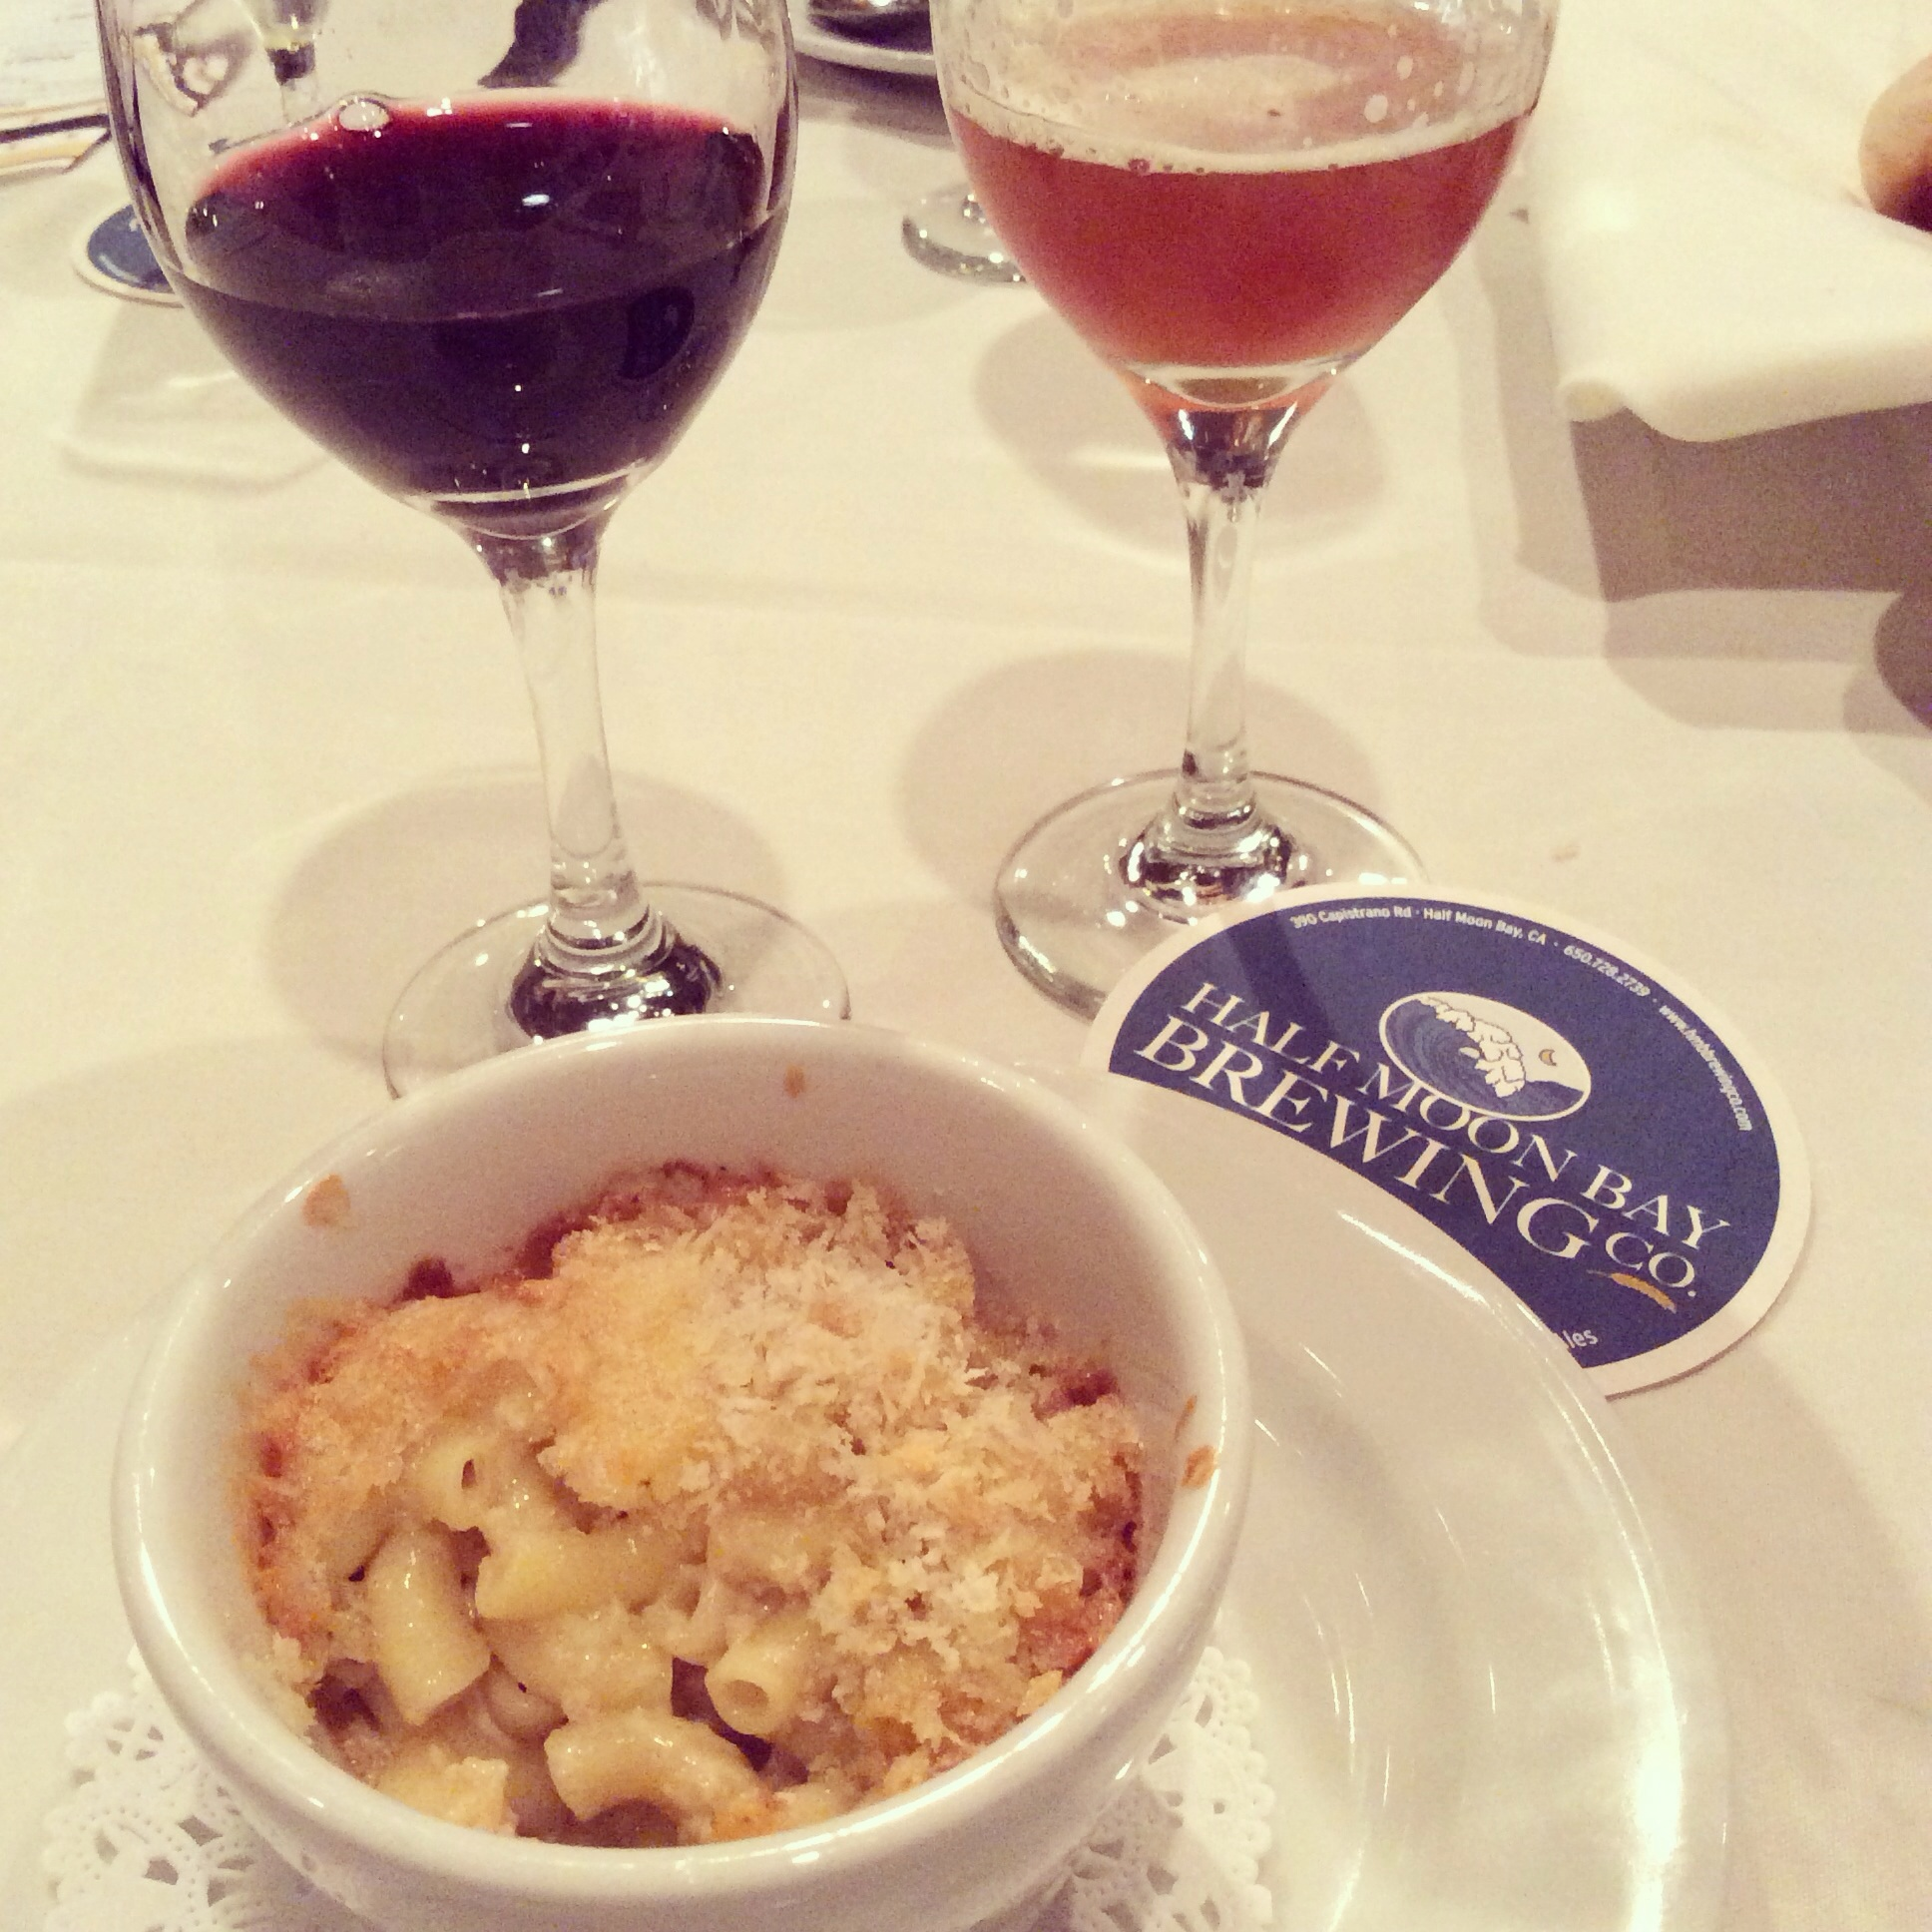 Mac & Cheese with Harley Farms Fromage Blanc and Cowgirl Creamery Red Hawk Triple Cream Princeton by the Sea IPA 2010 Hatcher Winery Mourvedre